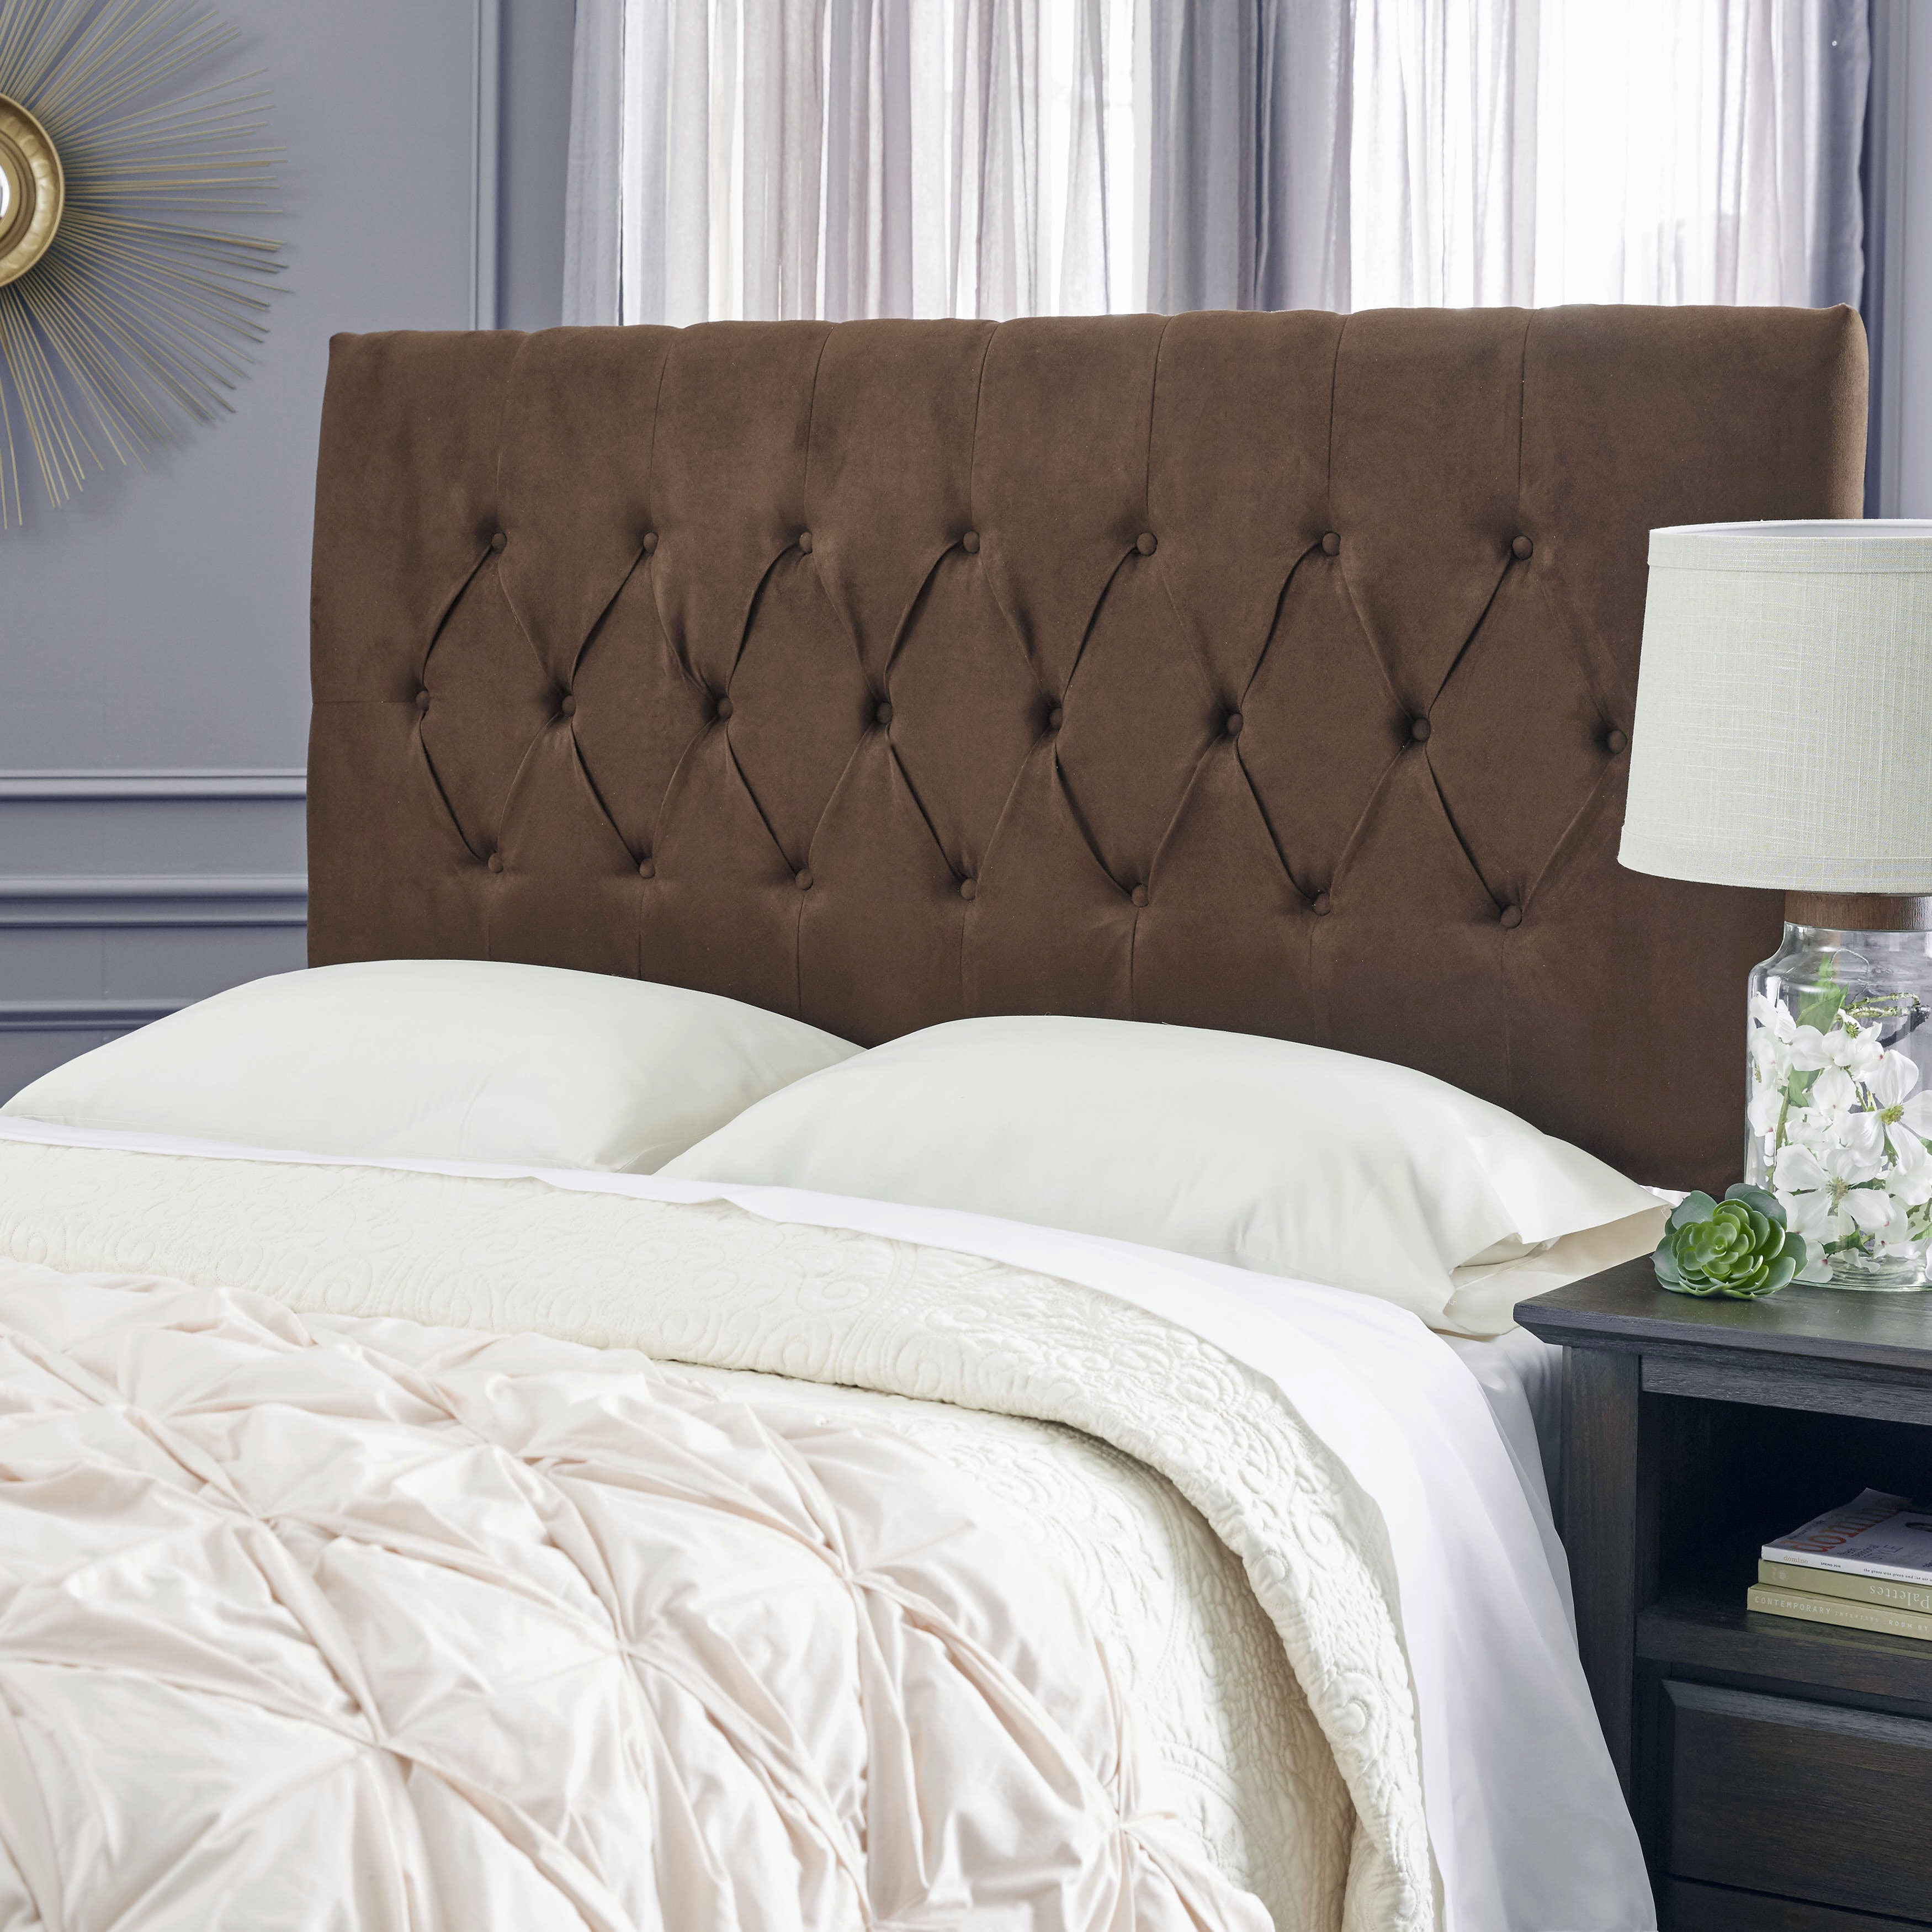 Humble haute hudson suede chocolate brown upholstered headboard